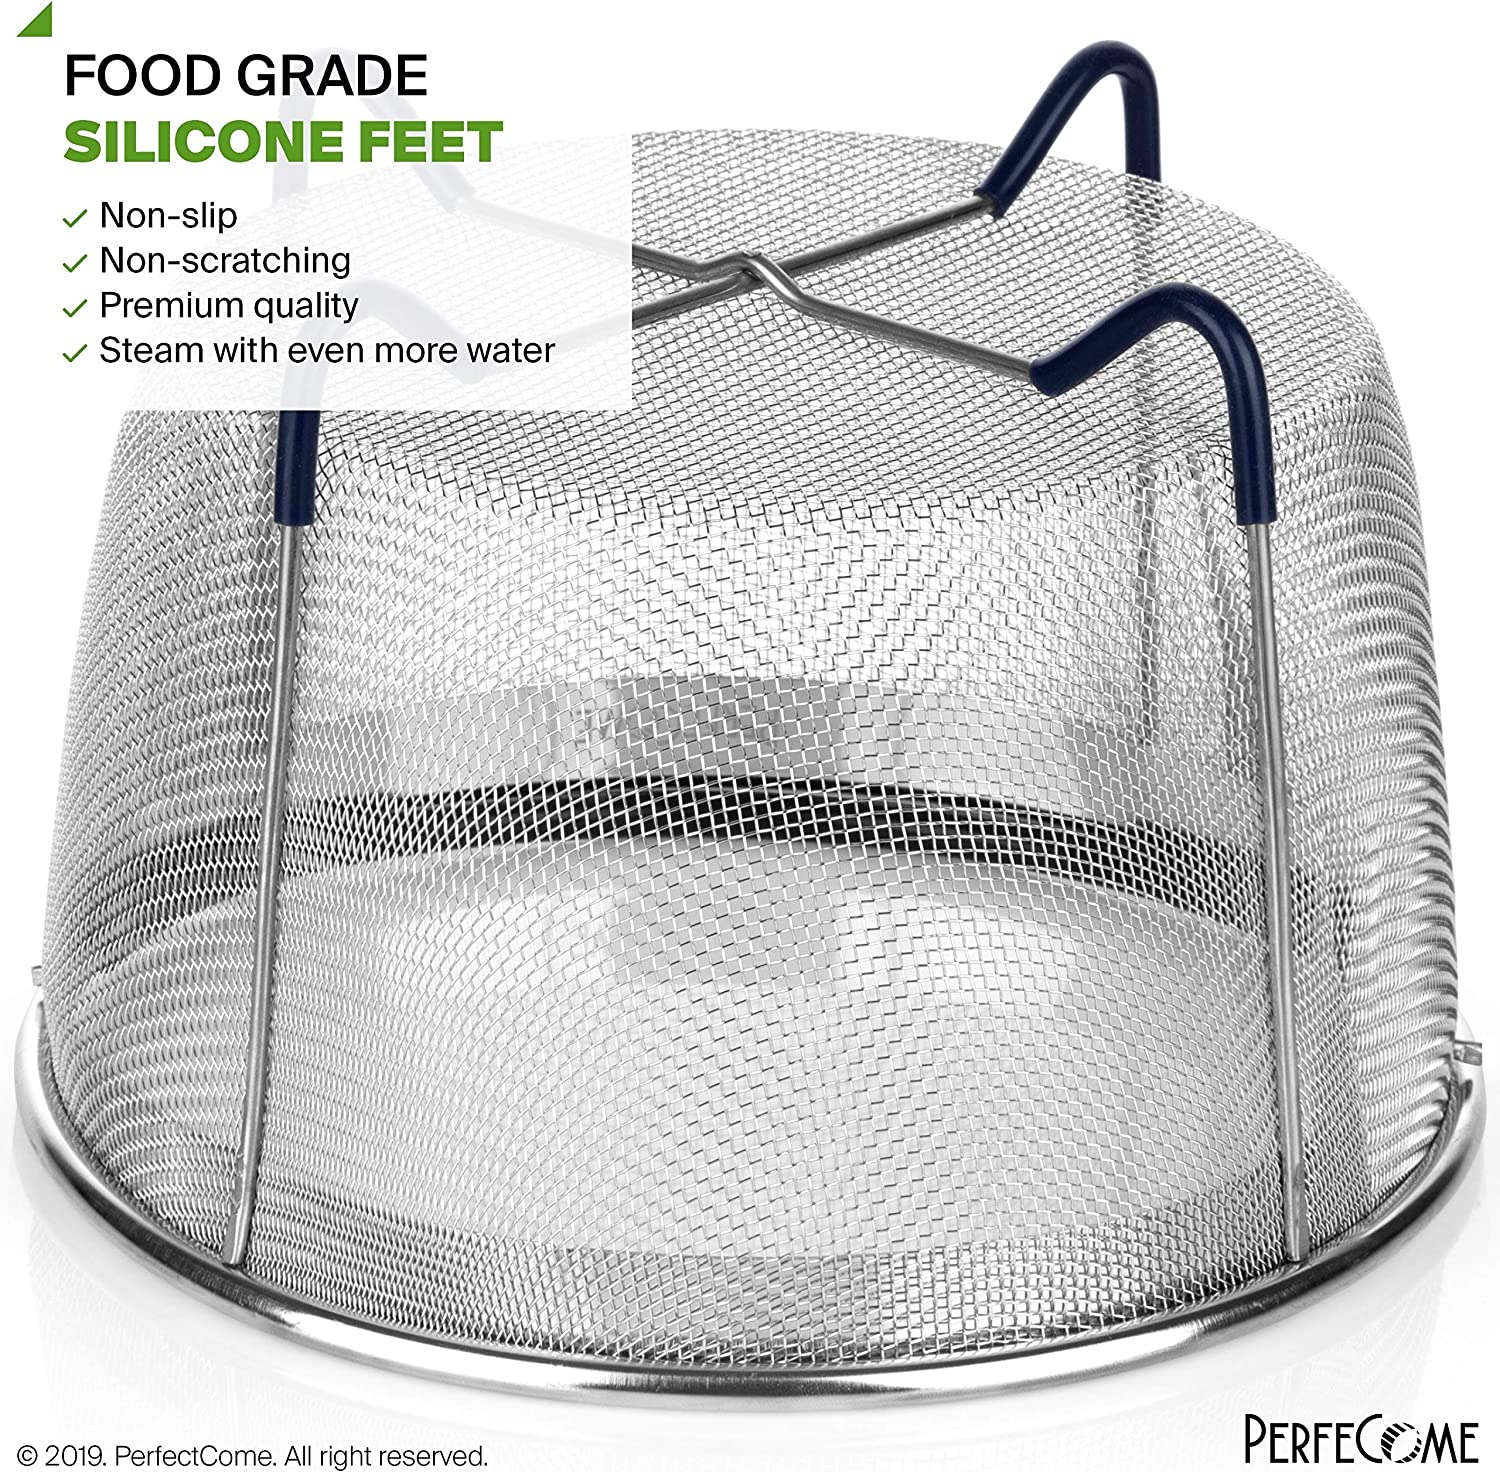 Steamer Basket for 6 and 8 Quart Pressure Cooker PerfeCome Ninja Foodi 8 Quart Emeril and Other IP Stainless Steel Insert with Silicone Covered Handle and Legs fits Instant Pot 6